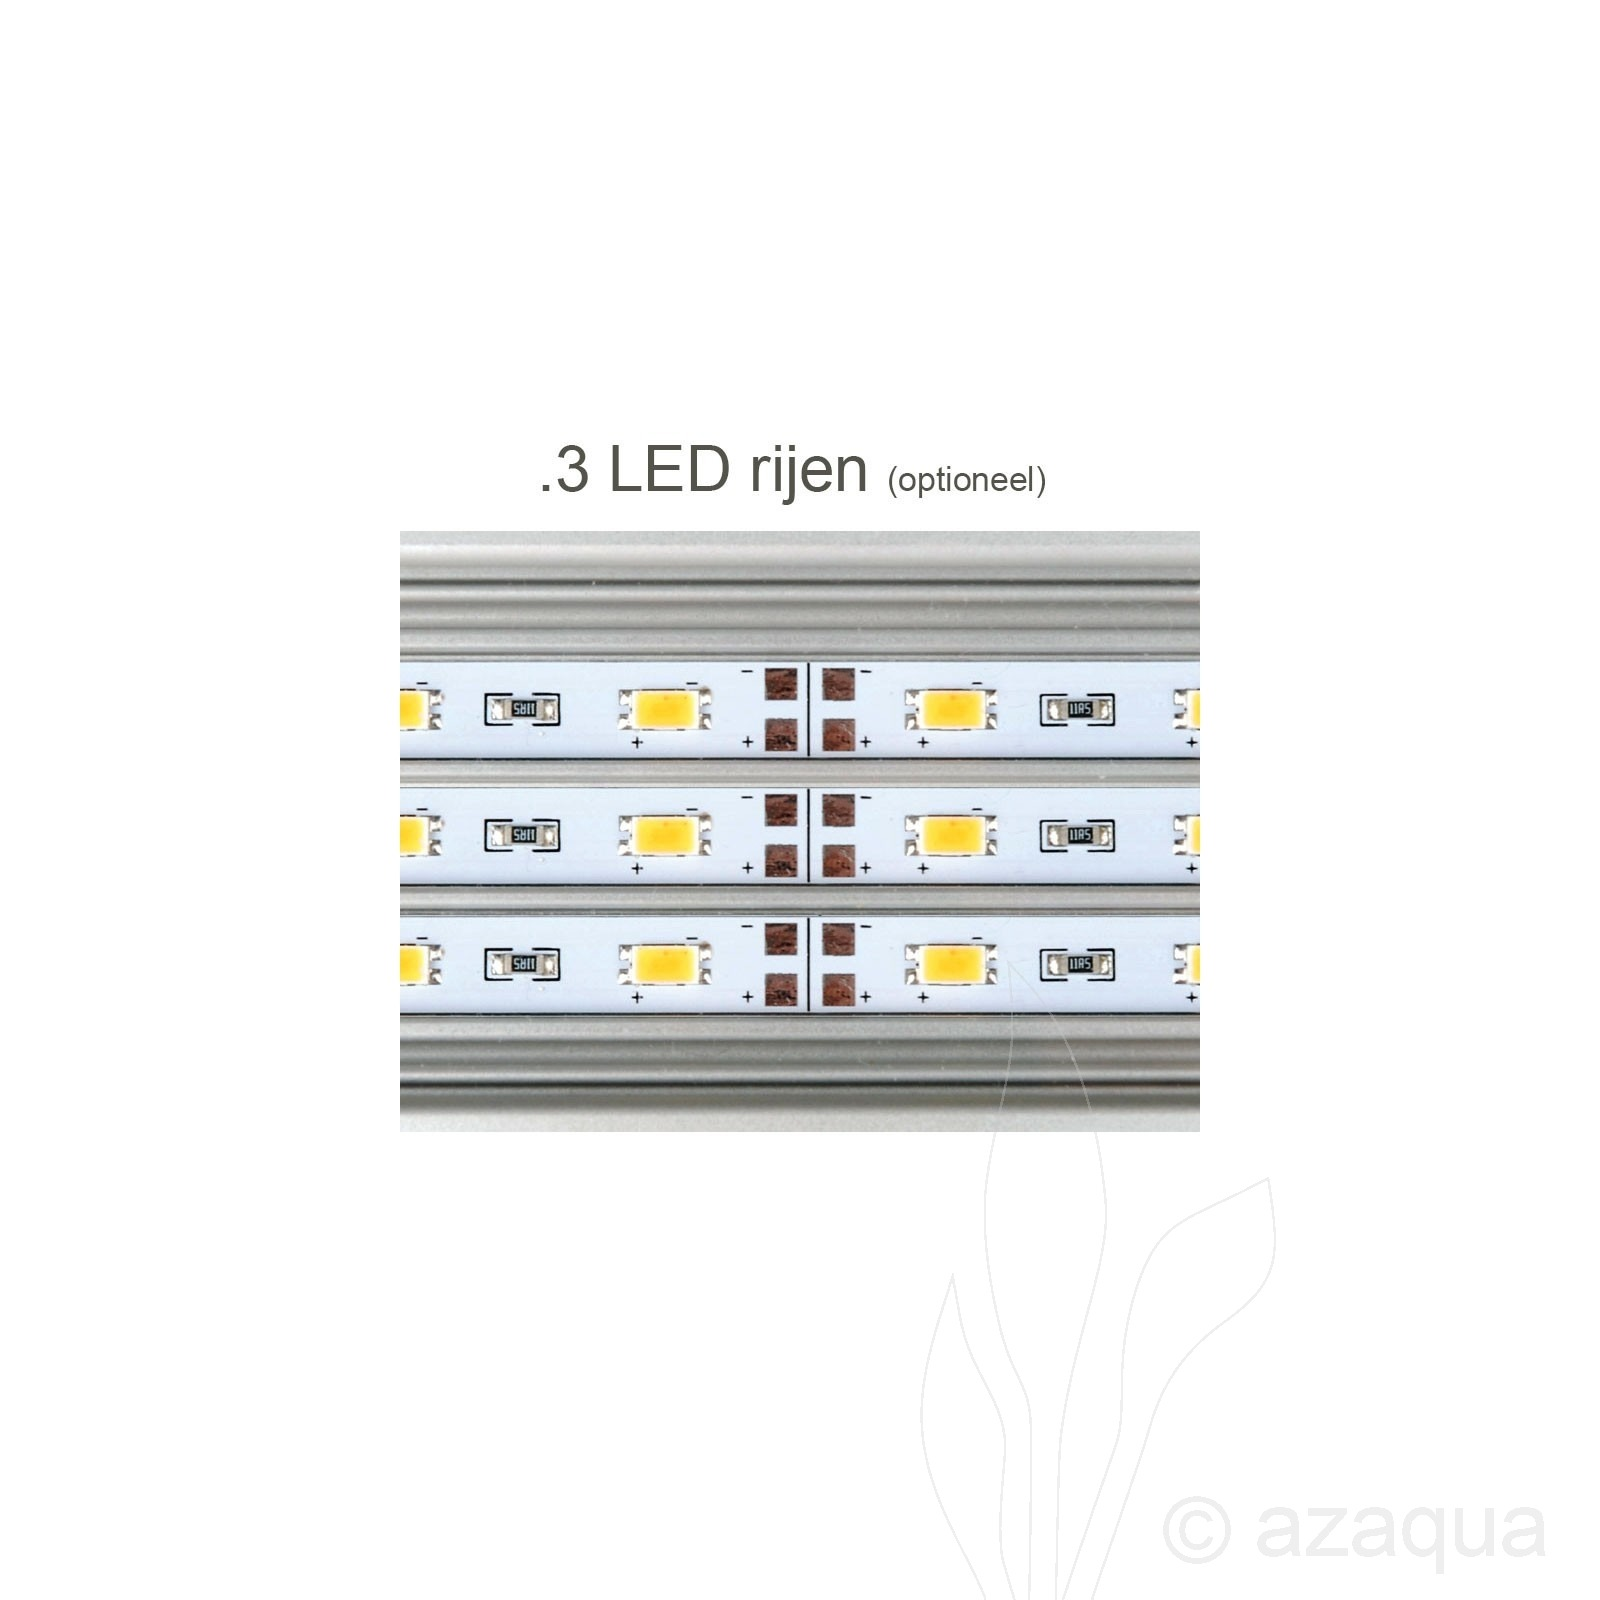 daytime eco 3 led rows optional led lighting aquarium